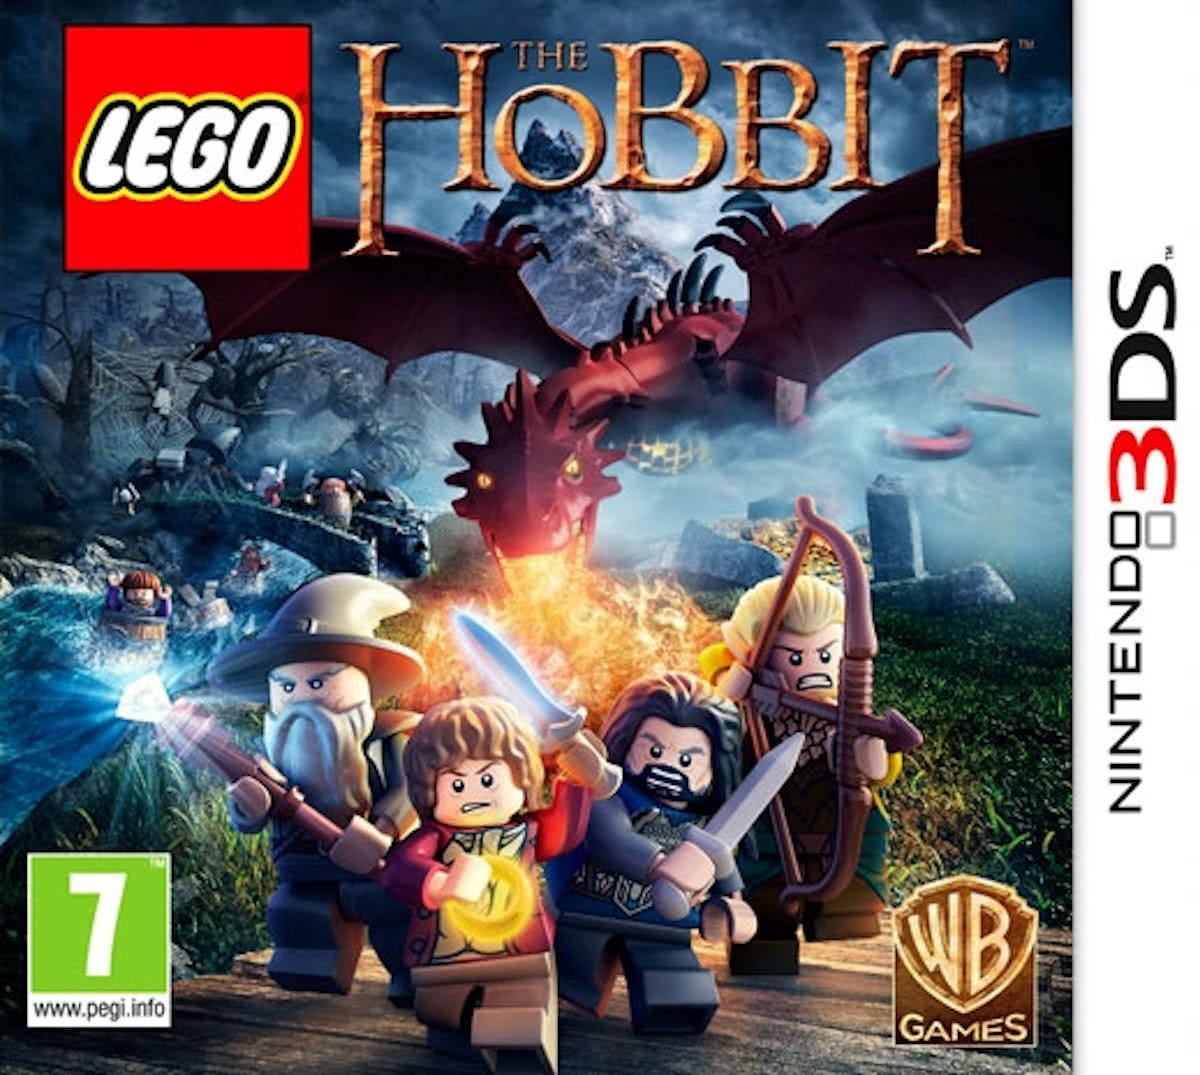 Lego The Hobbit (ENG/Nordic) /3DS